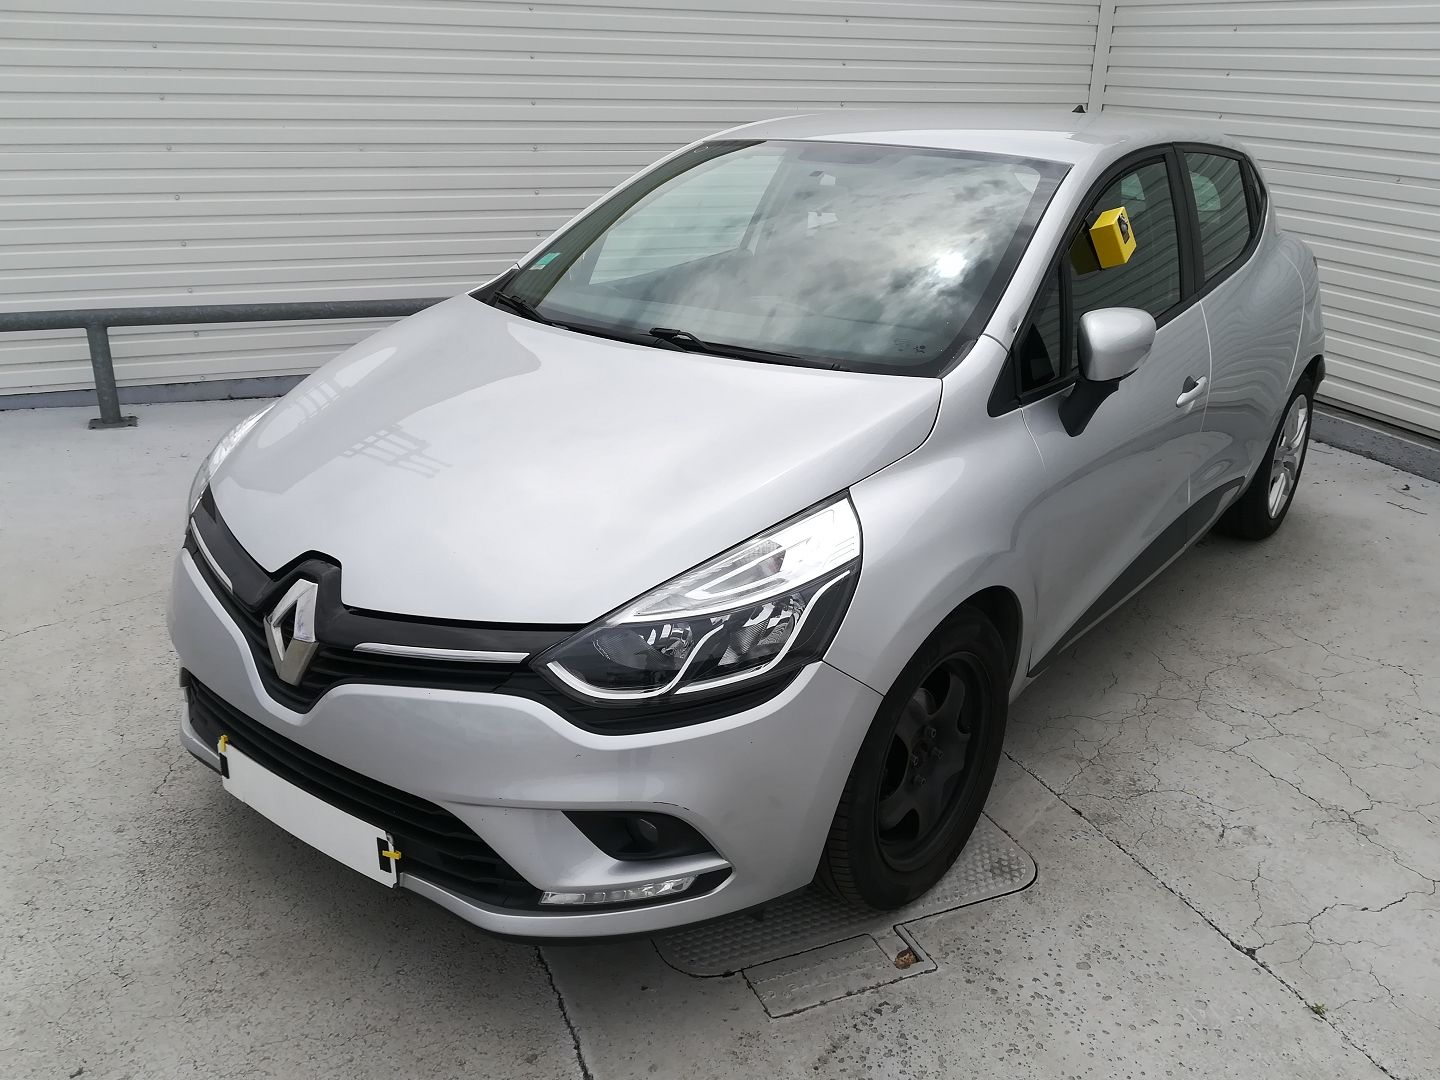 RENAULT CLIO IV 1.5 DCI 90CH ENERGY BUSINESS 82G 5P